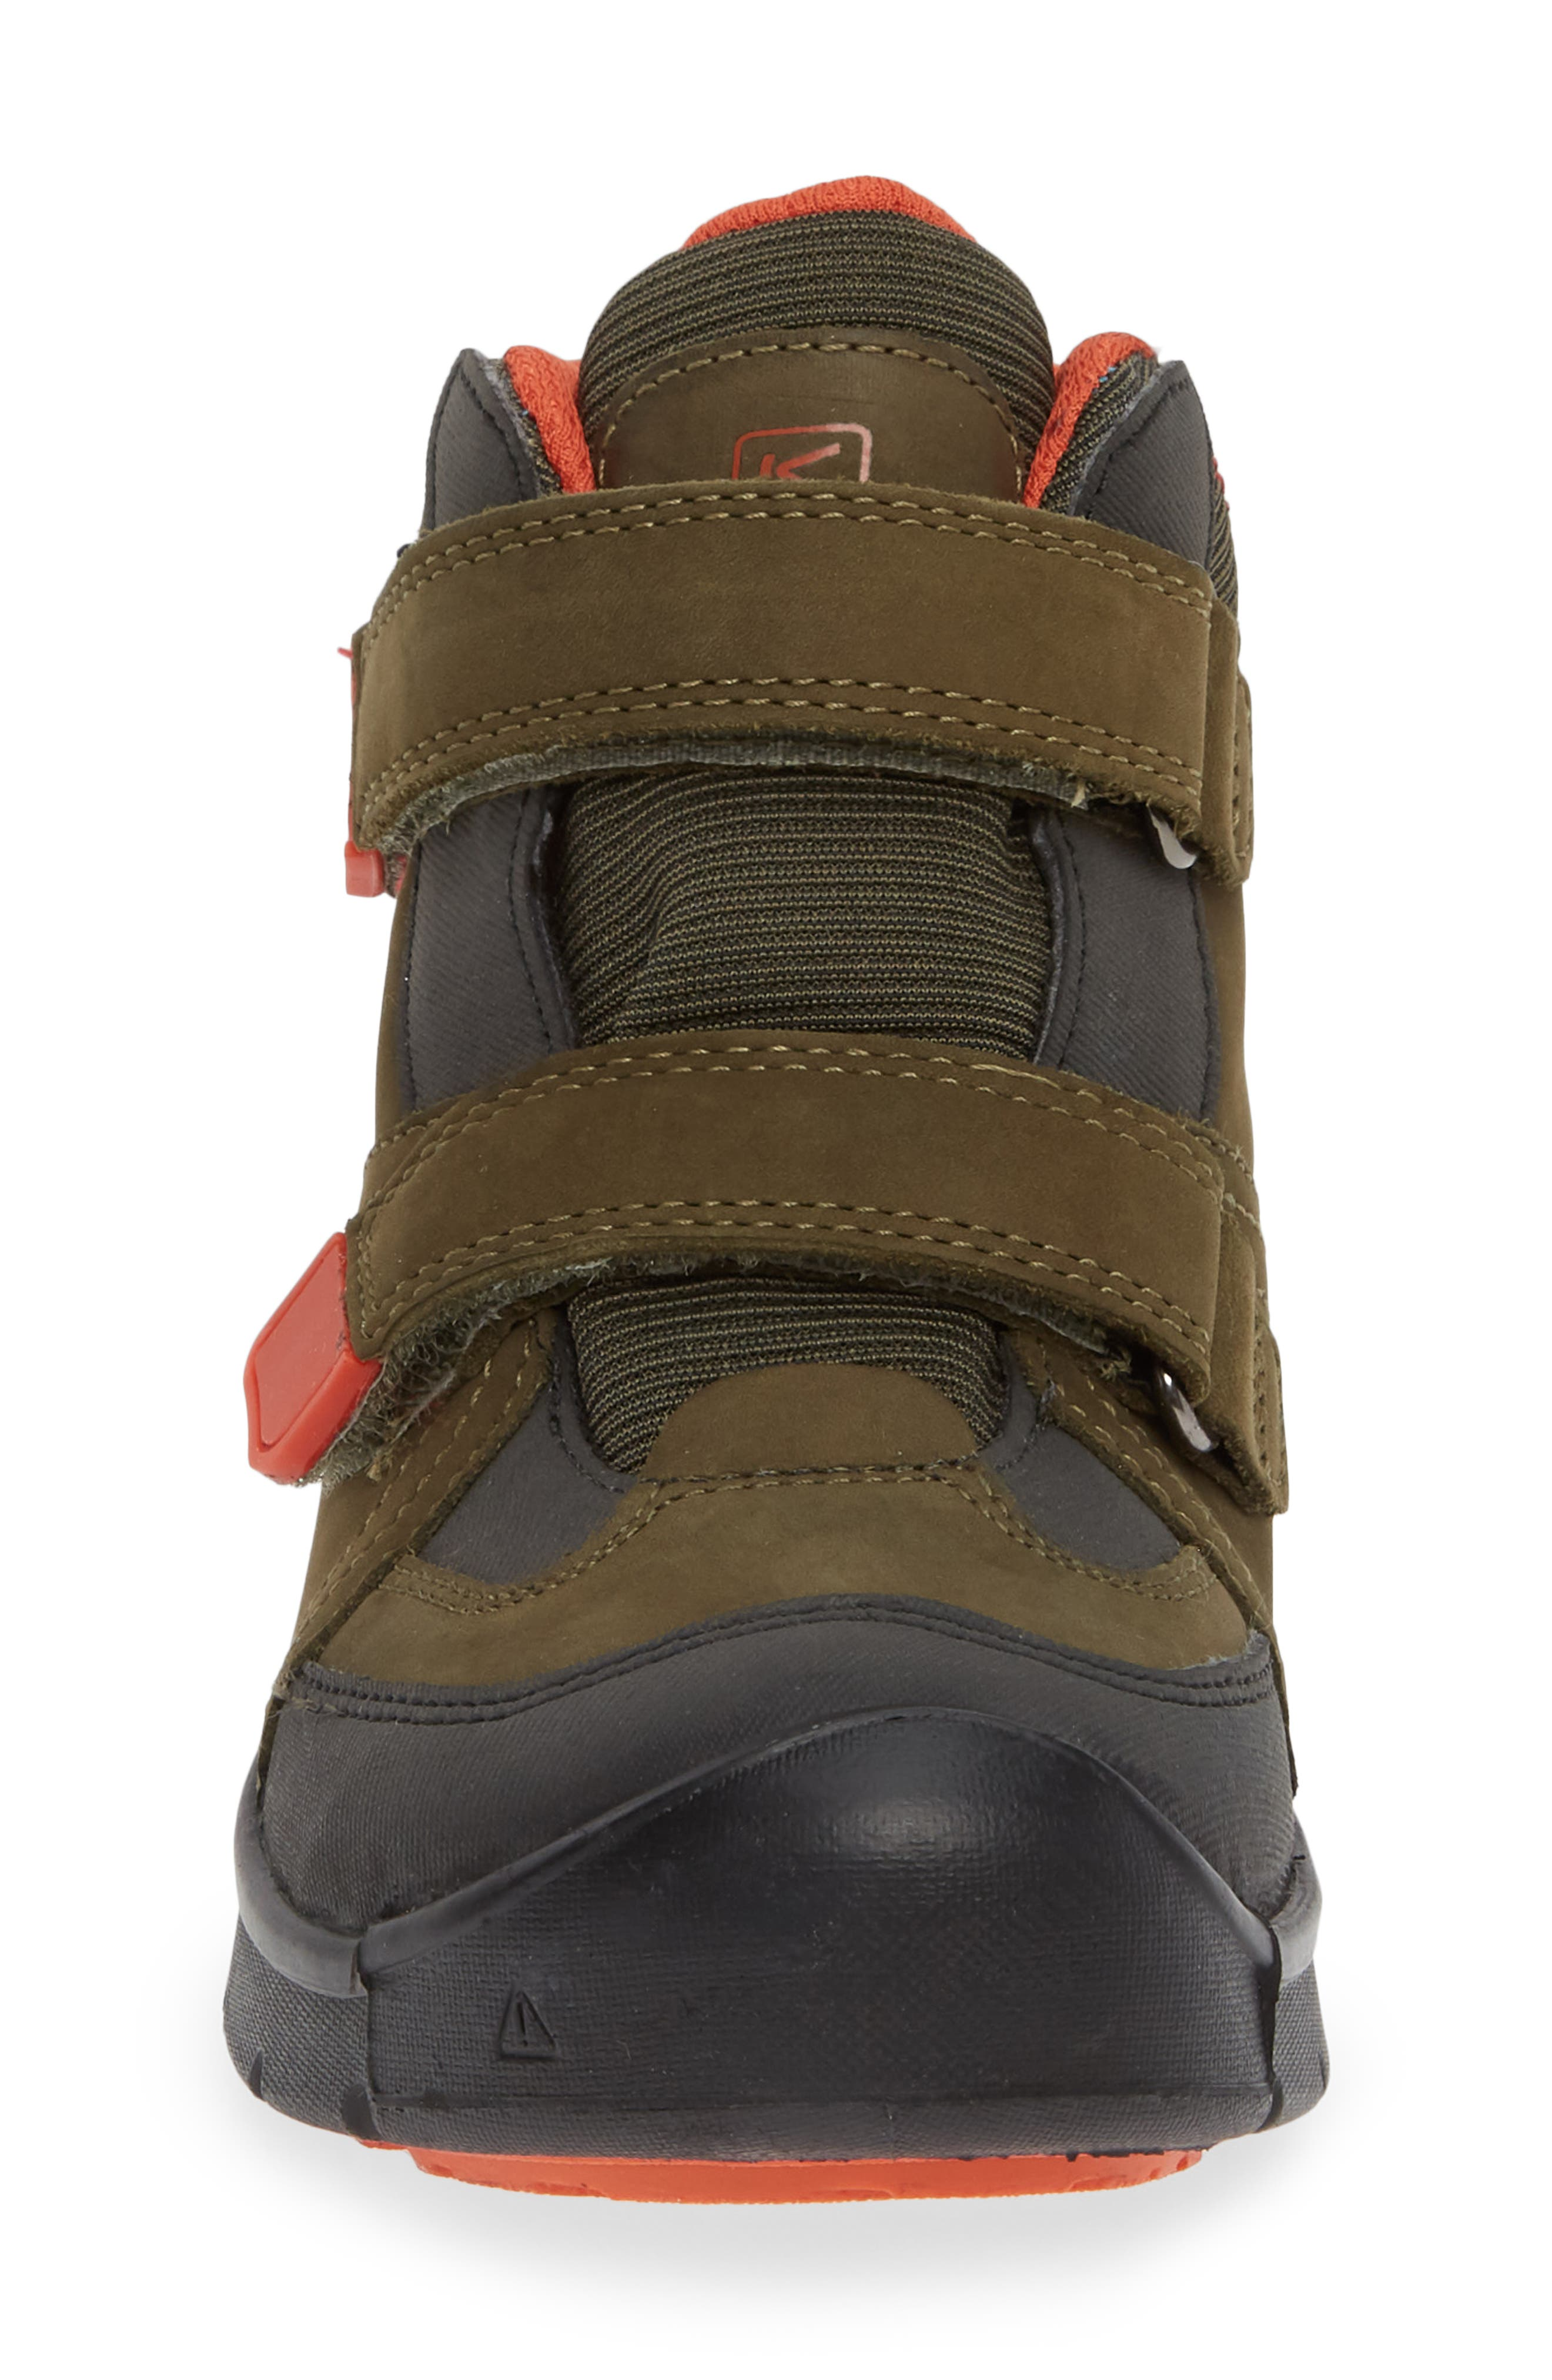 KEEN, Hikeport Strap Waterproof Mid Boot, Alternate thumbnail 4, color, MARTINI OLIVE/ PUMPKIN